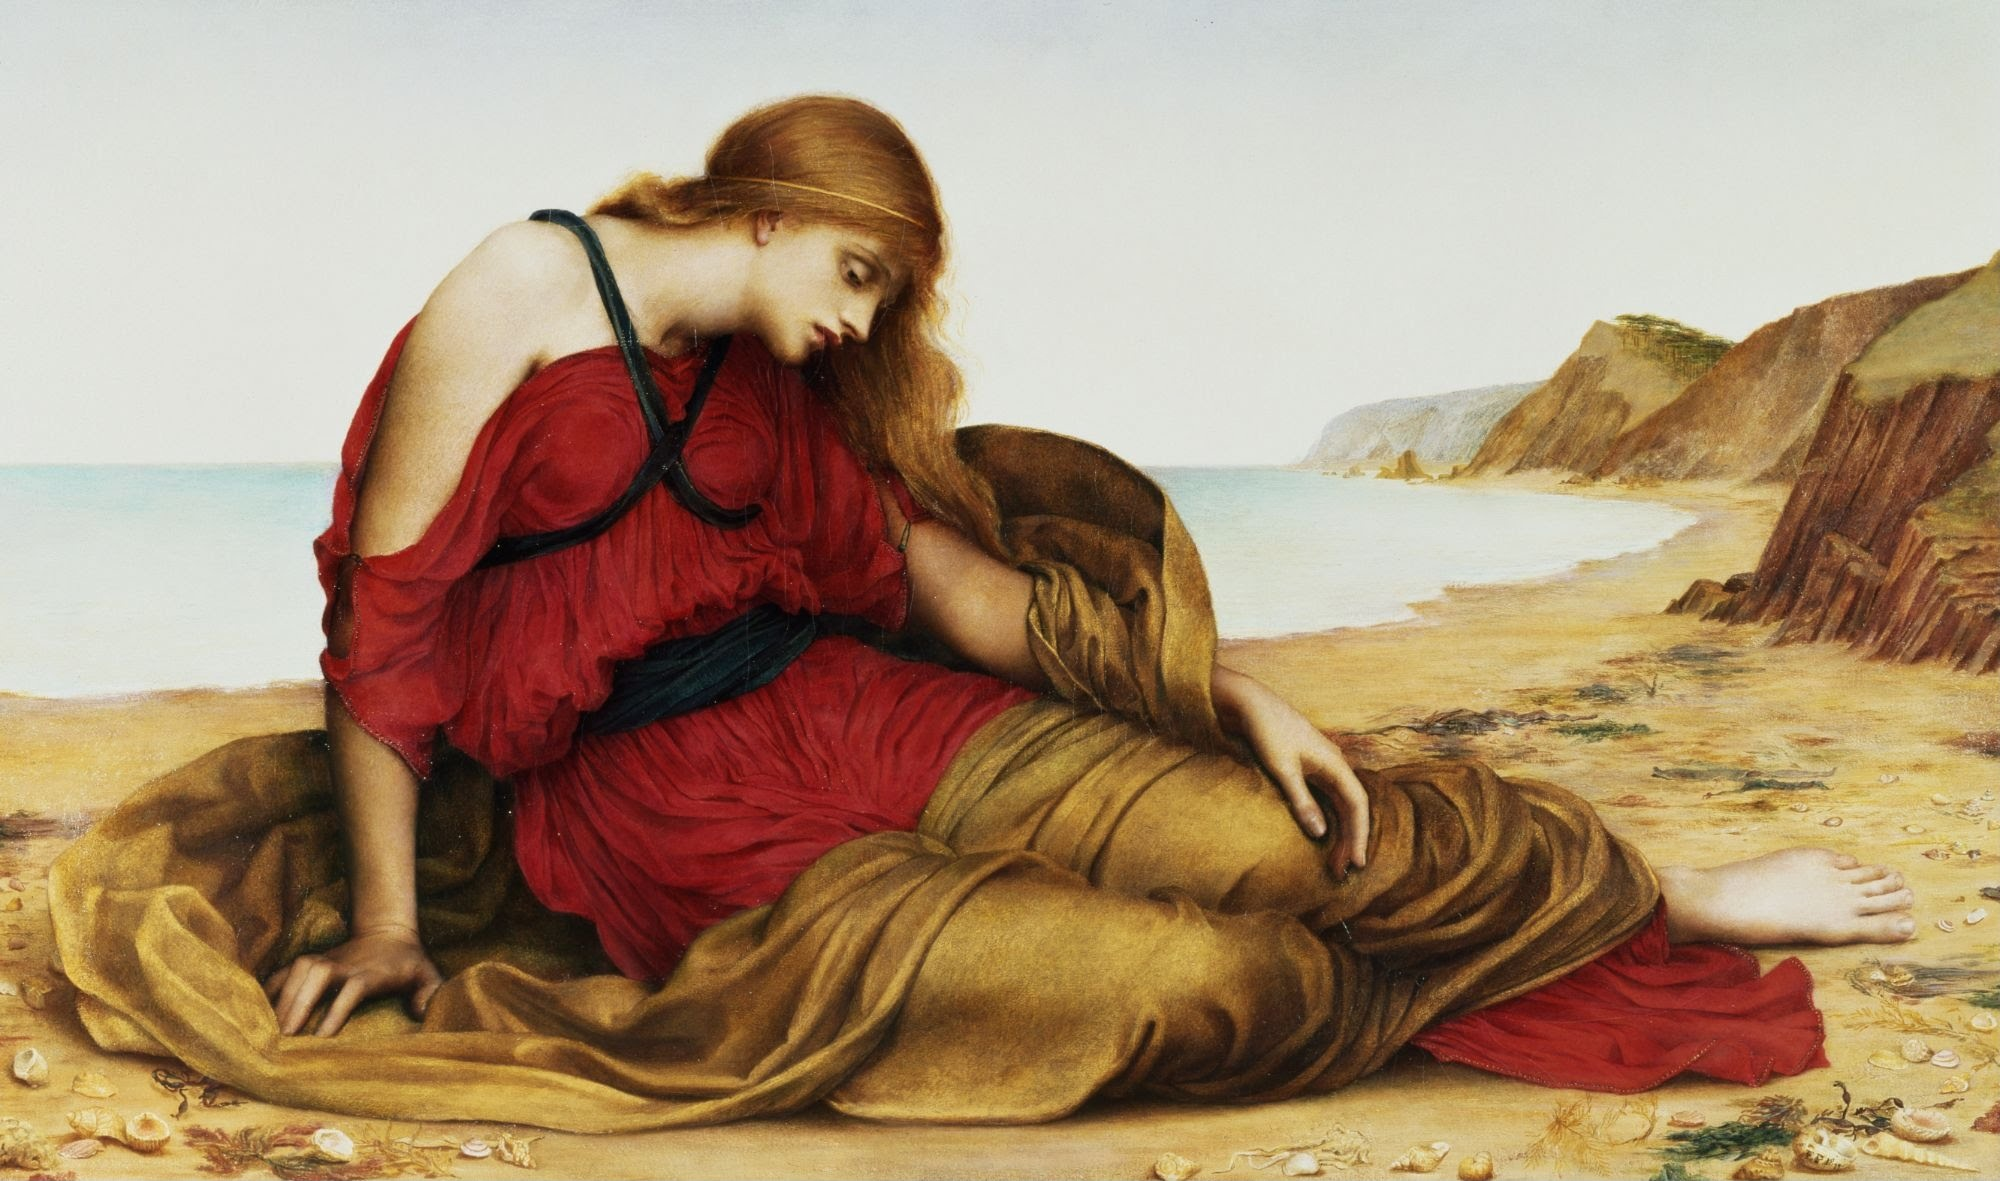 https://upload.wikimedia.org/wikipedia/commons/5/5f/Ariadne_in_Naxos%2C_by_Evelyn_De_Morgan%2C_1877.jpg